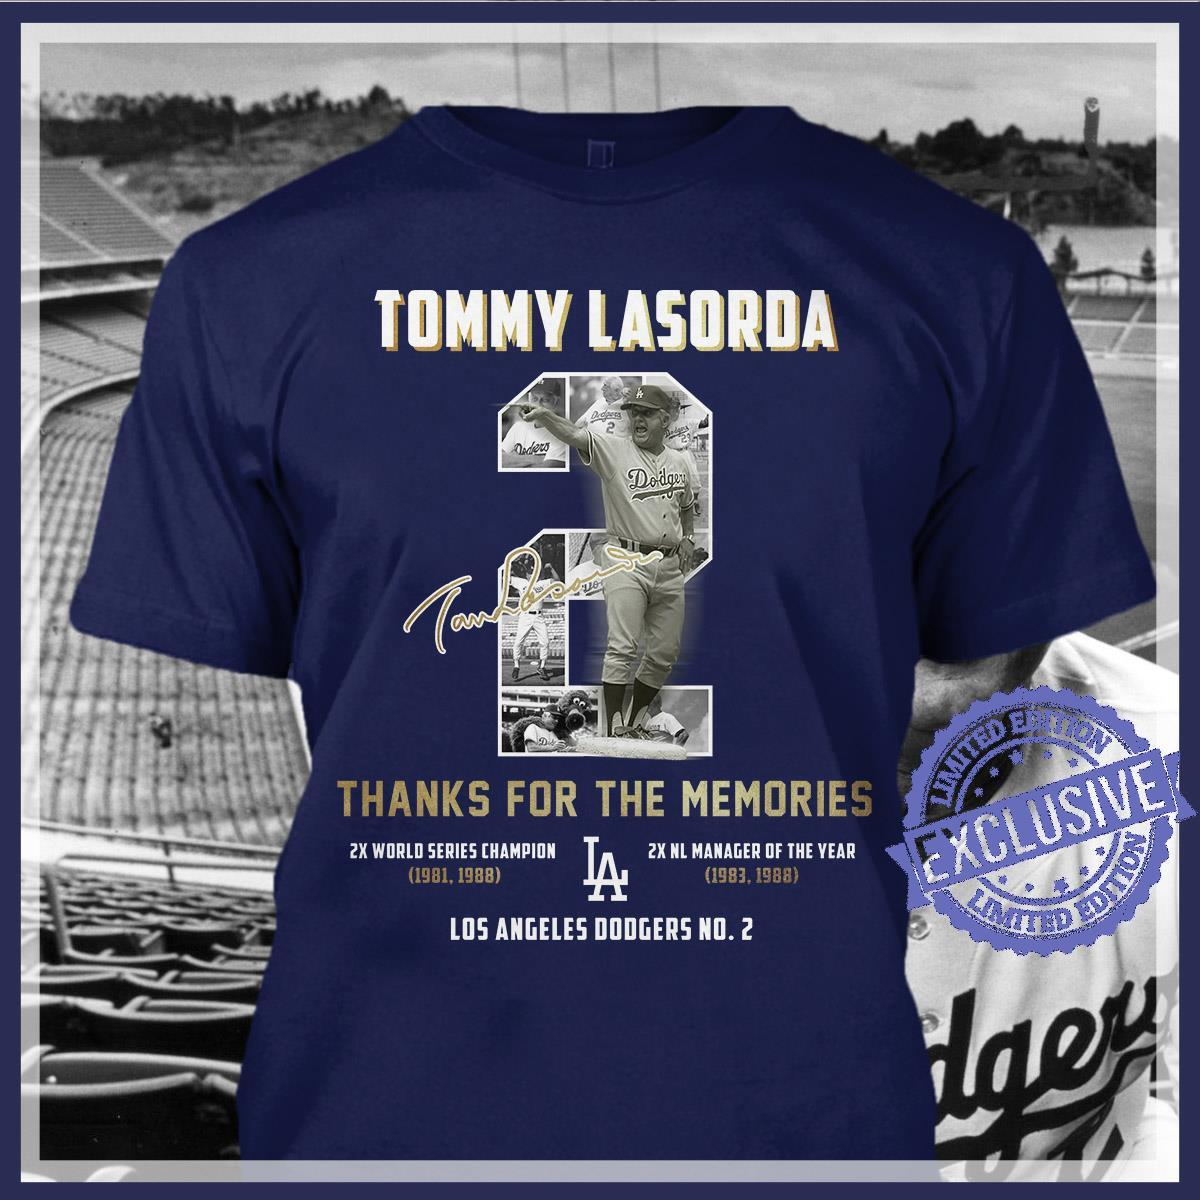 Tommy lasorda thanks for the memories shirt